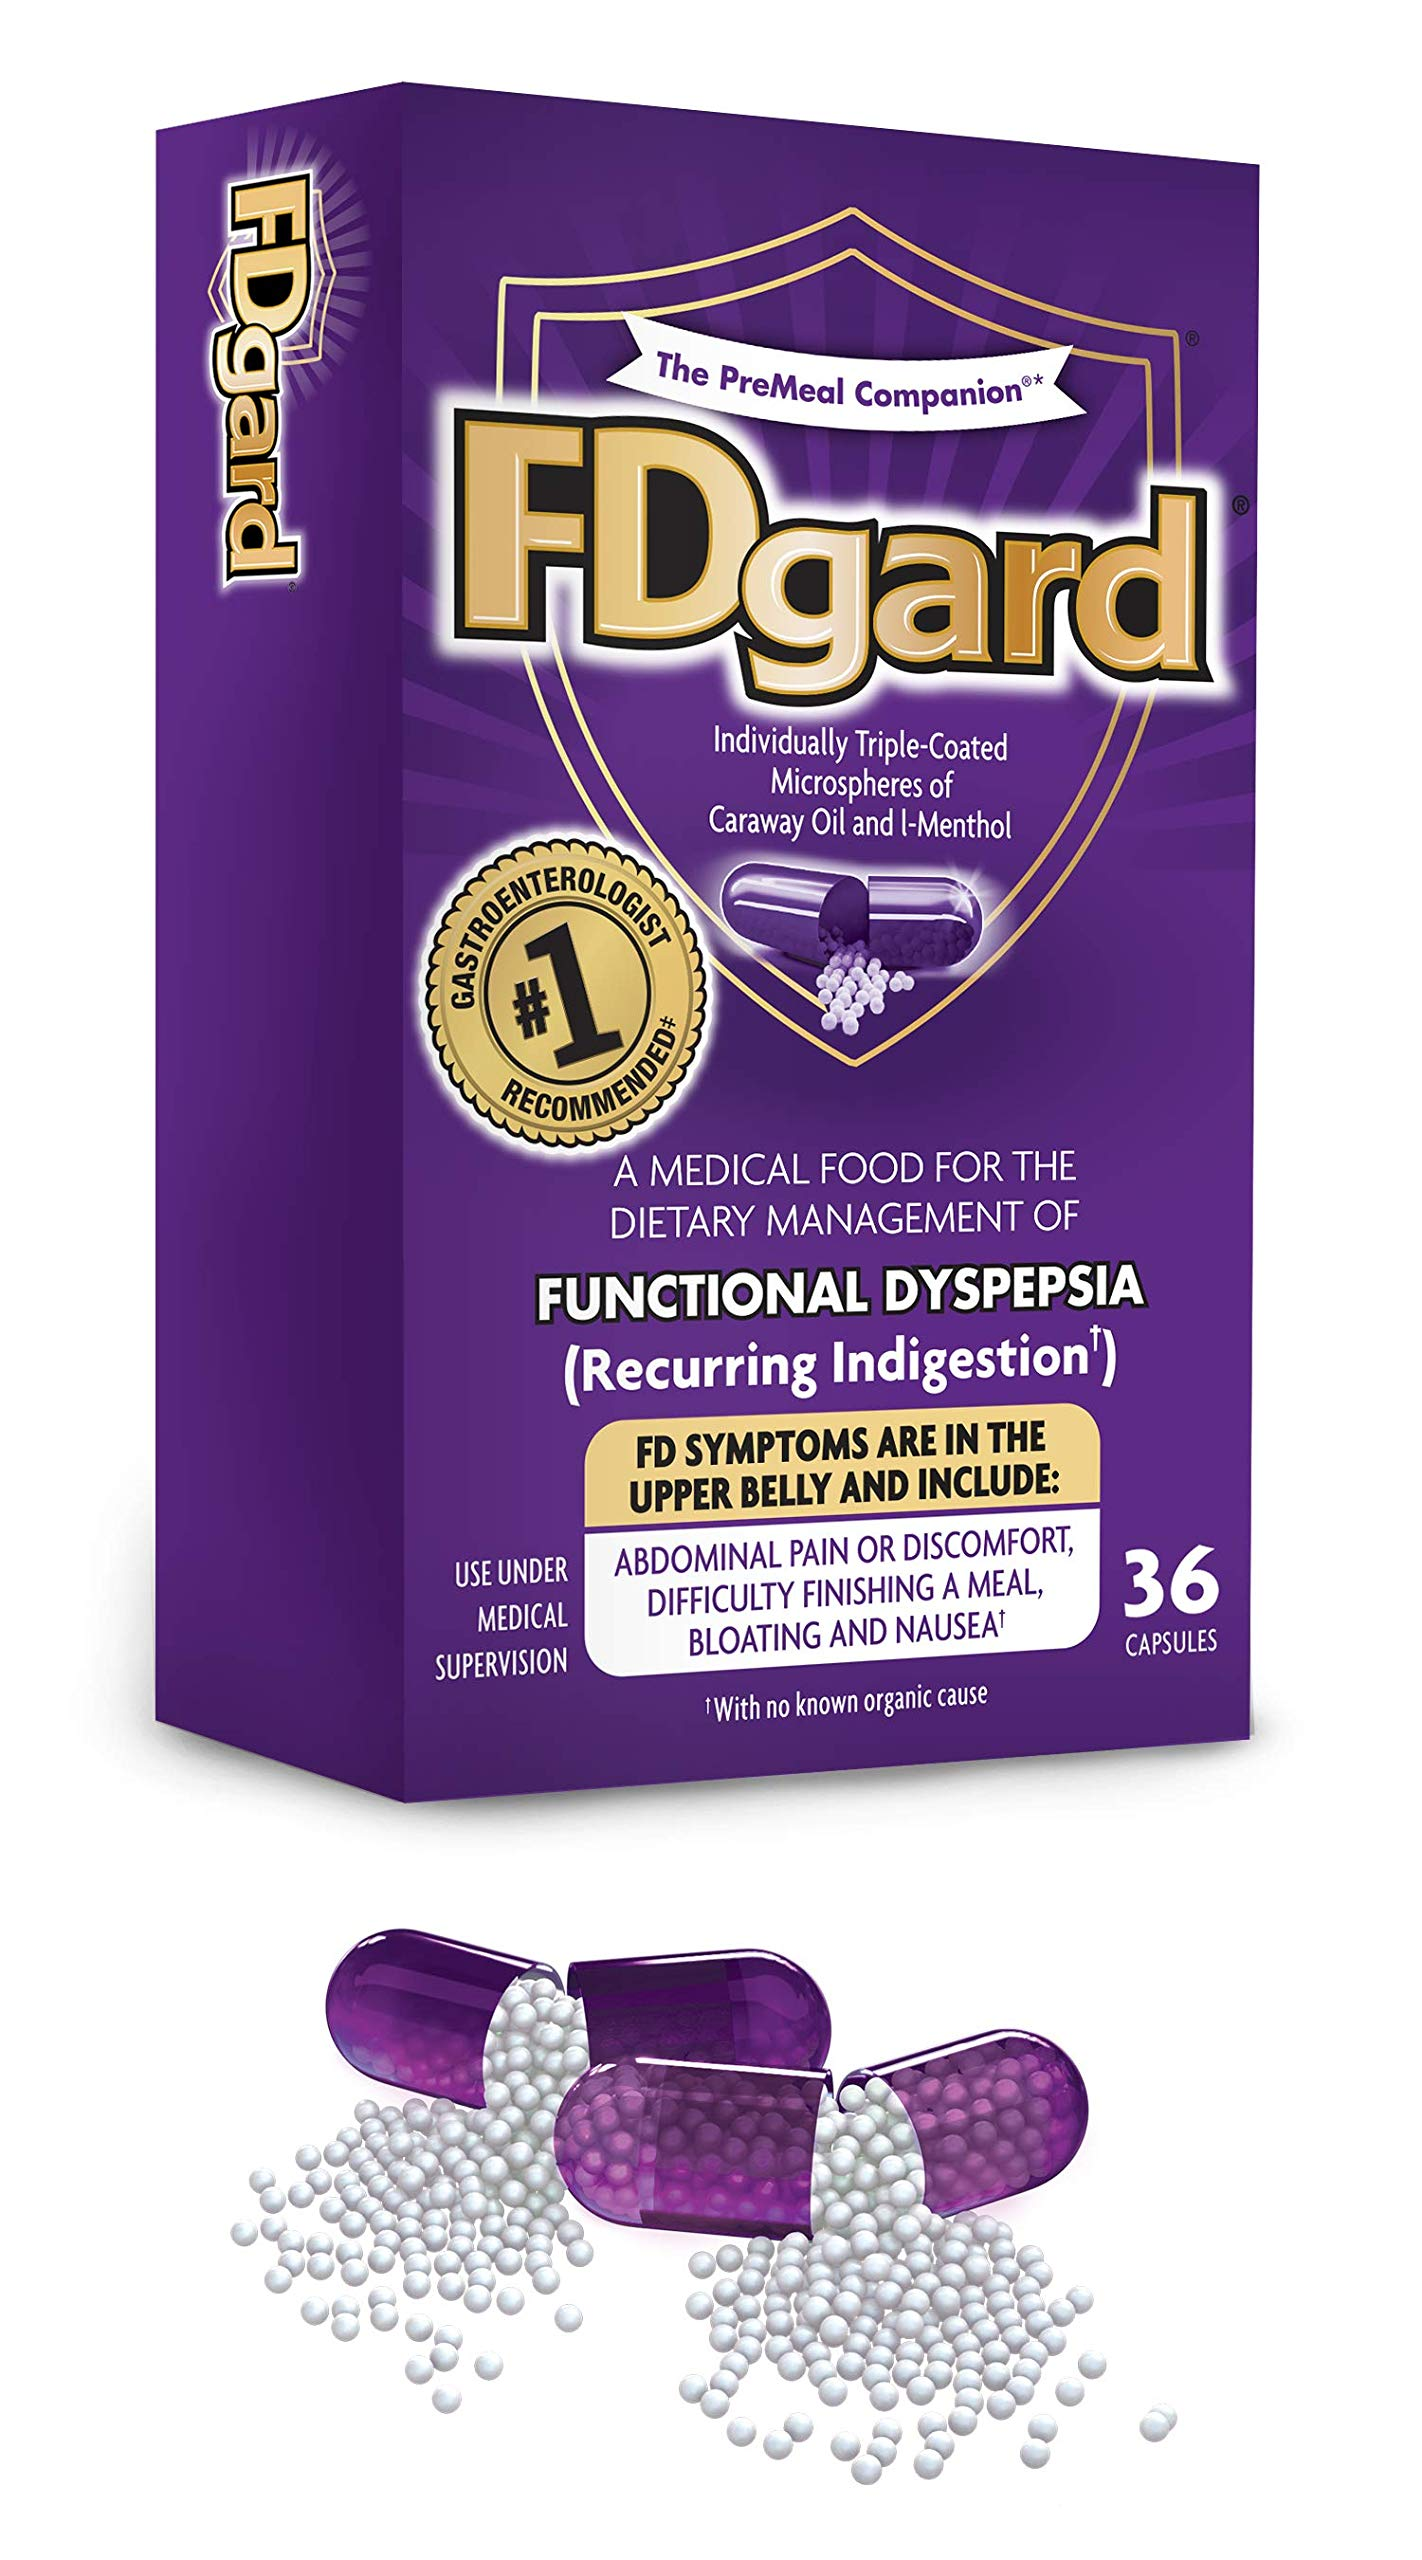 FDgard® for Functional Dyspepsia (Recurring Indigestion), 36 Capsules